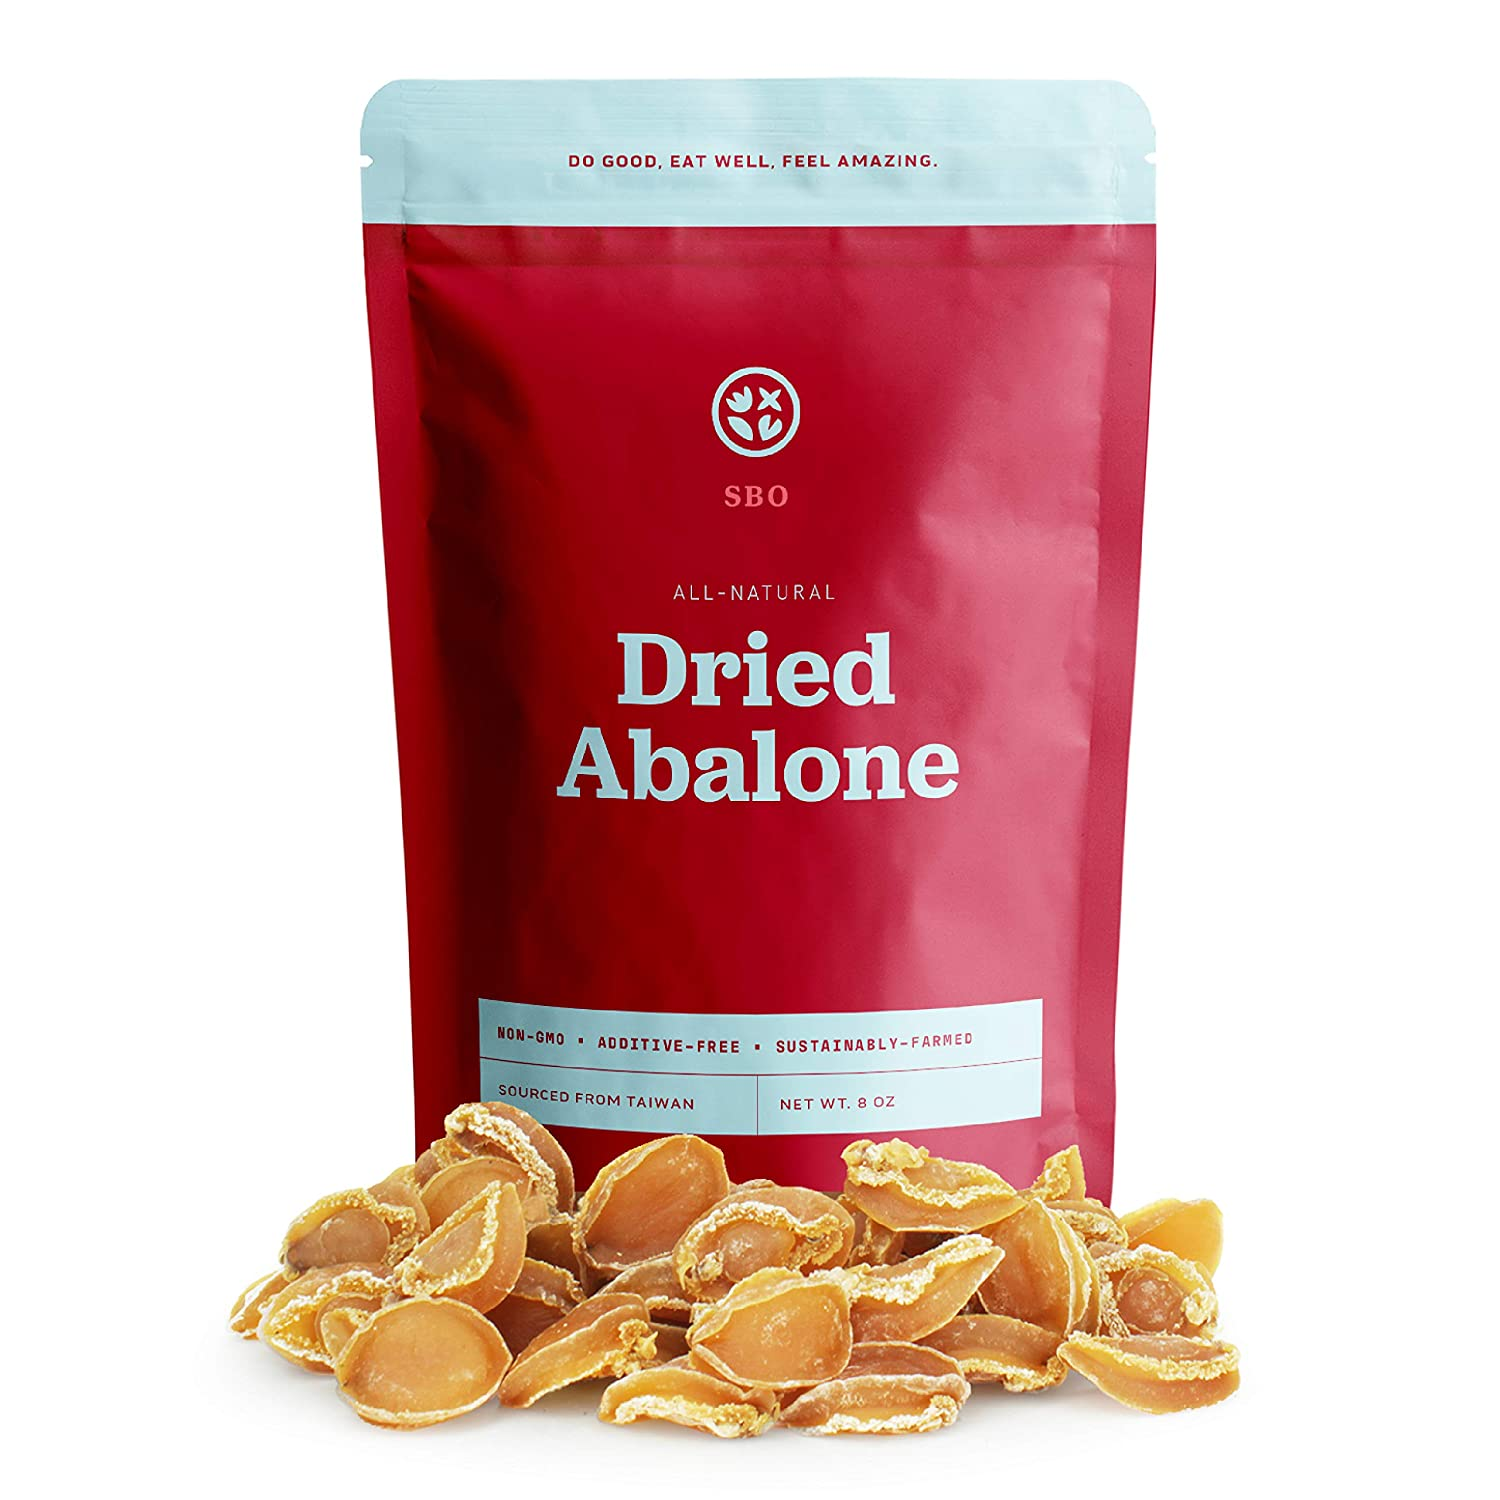 SBO Medium Size Dried Abalone - 8 oz Bag of Non-GMO Additive-Free Whole Dry Abalone Seafood Sustainably Sourced from Taiwan - 54 Pcs/LB